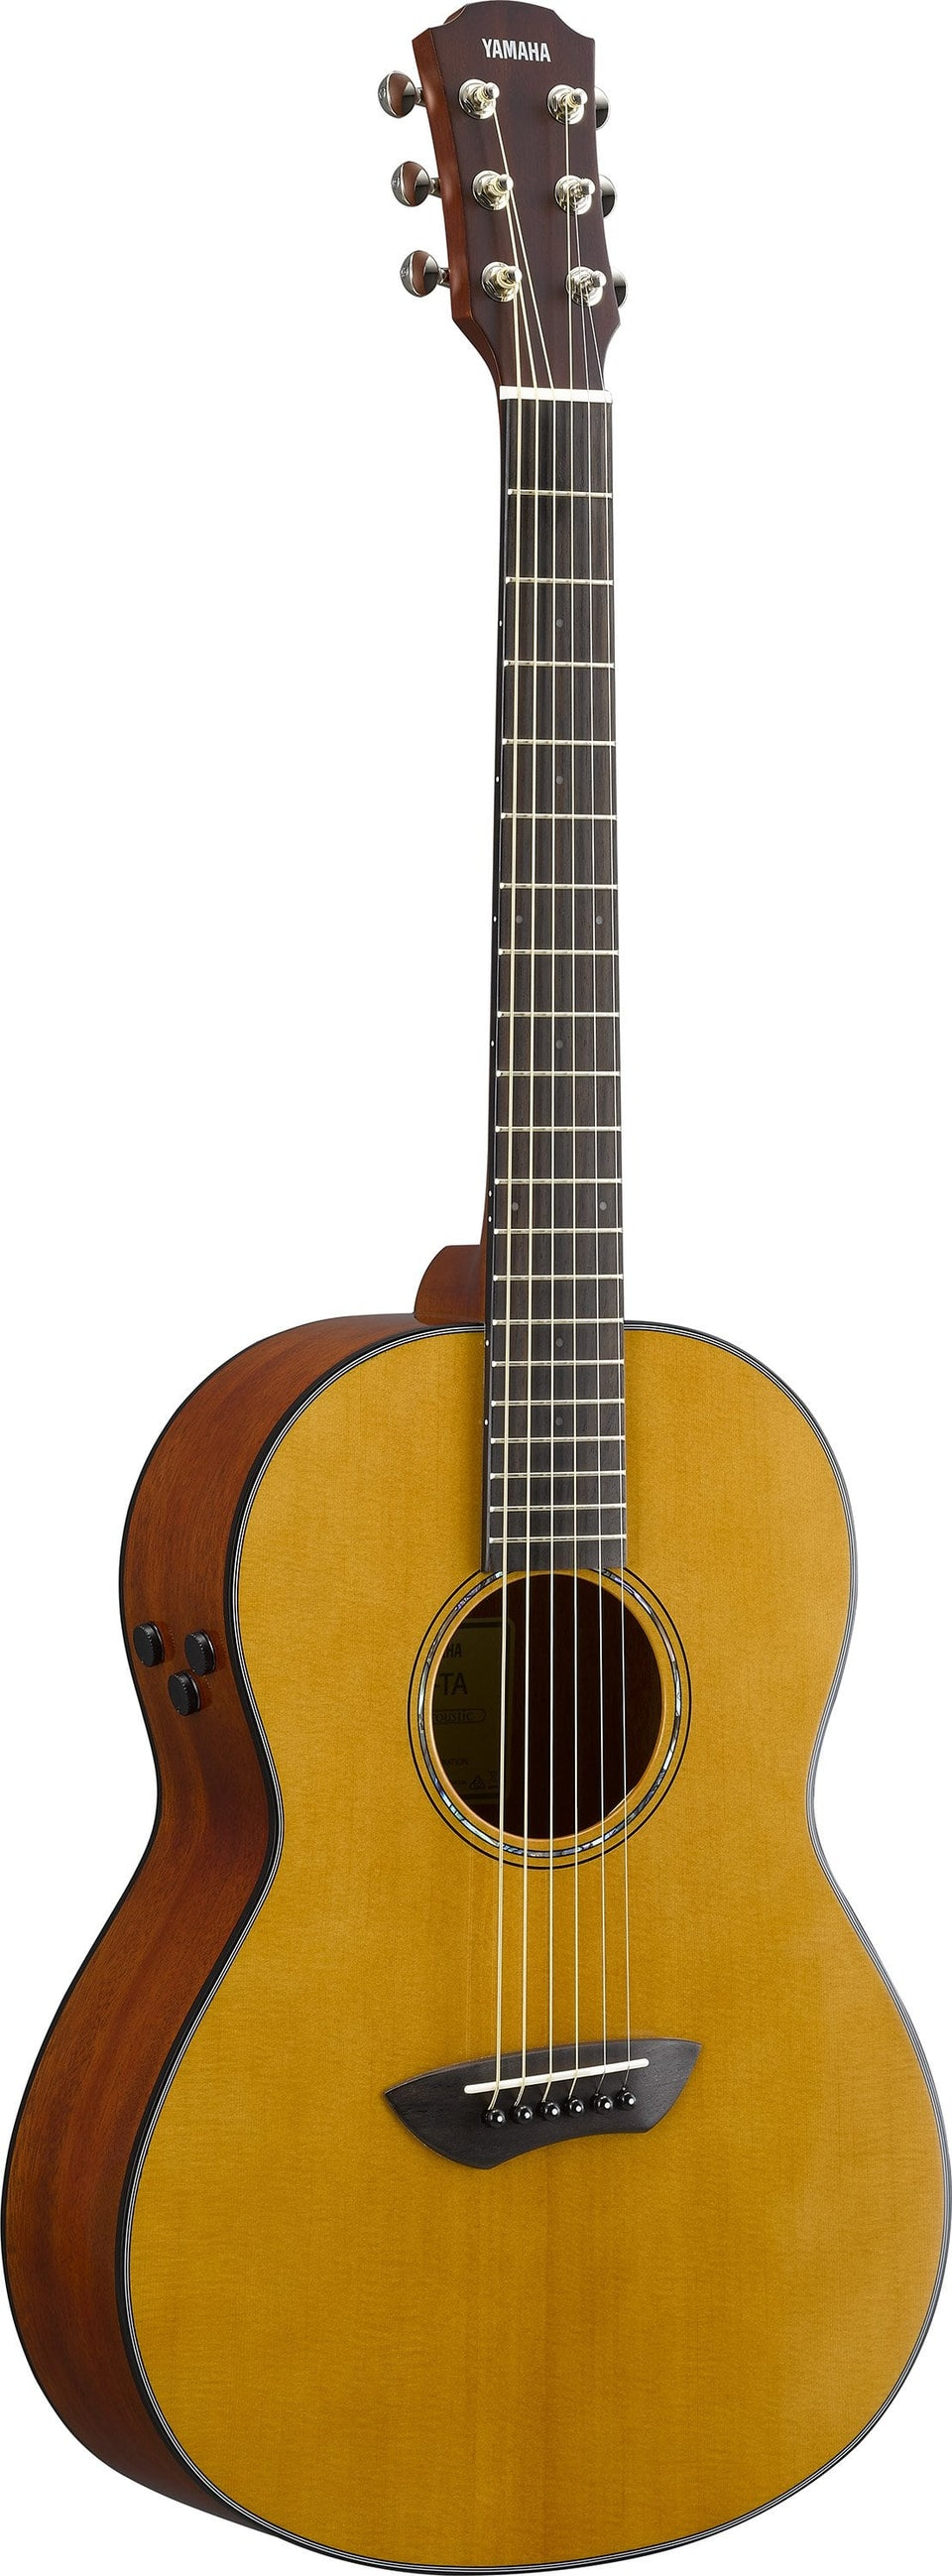 Yamaha CSF-TA TransAcoustic Acoustic Electric Guitar - Natural